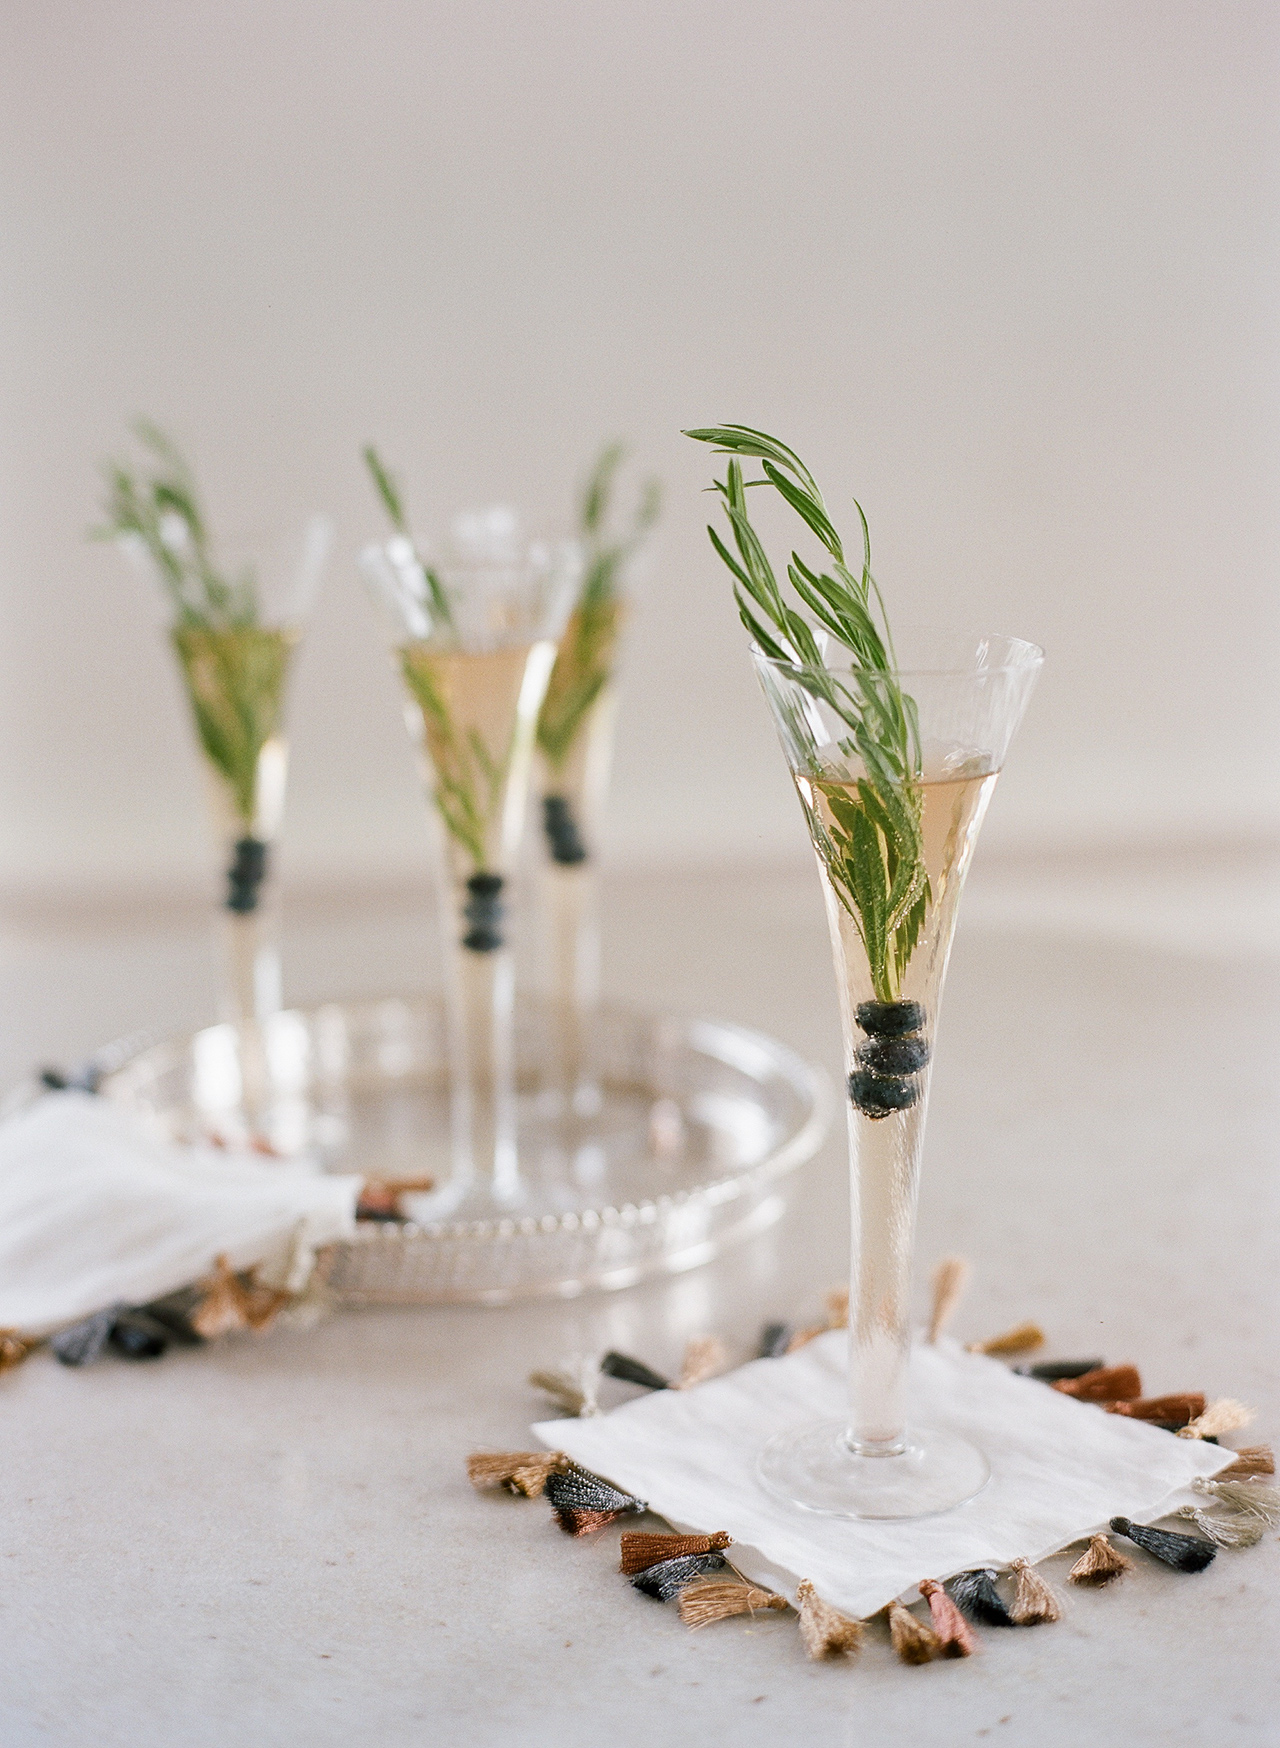 bubbly beverage with rosemary sprigs and blueberries